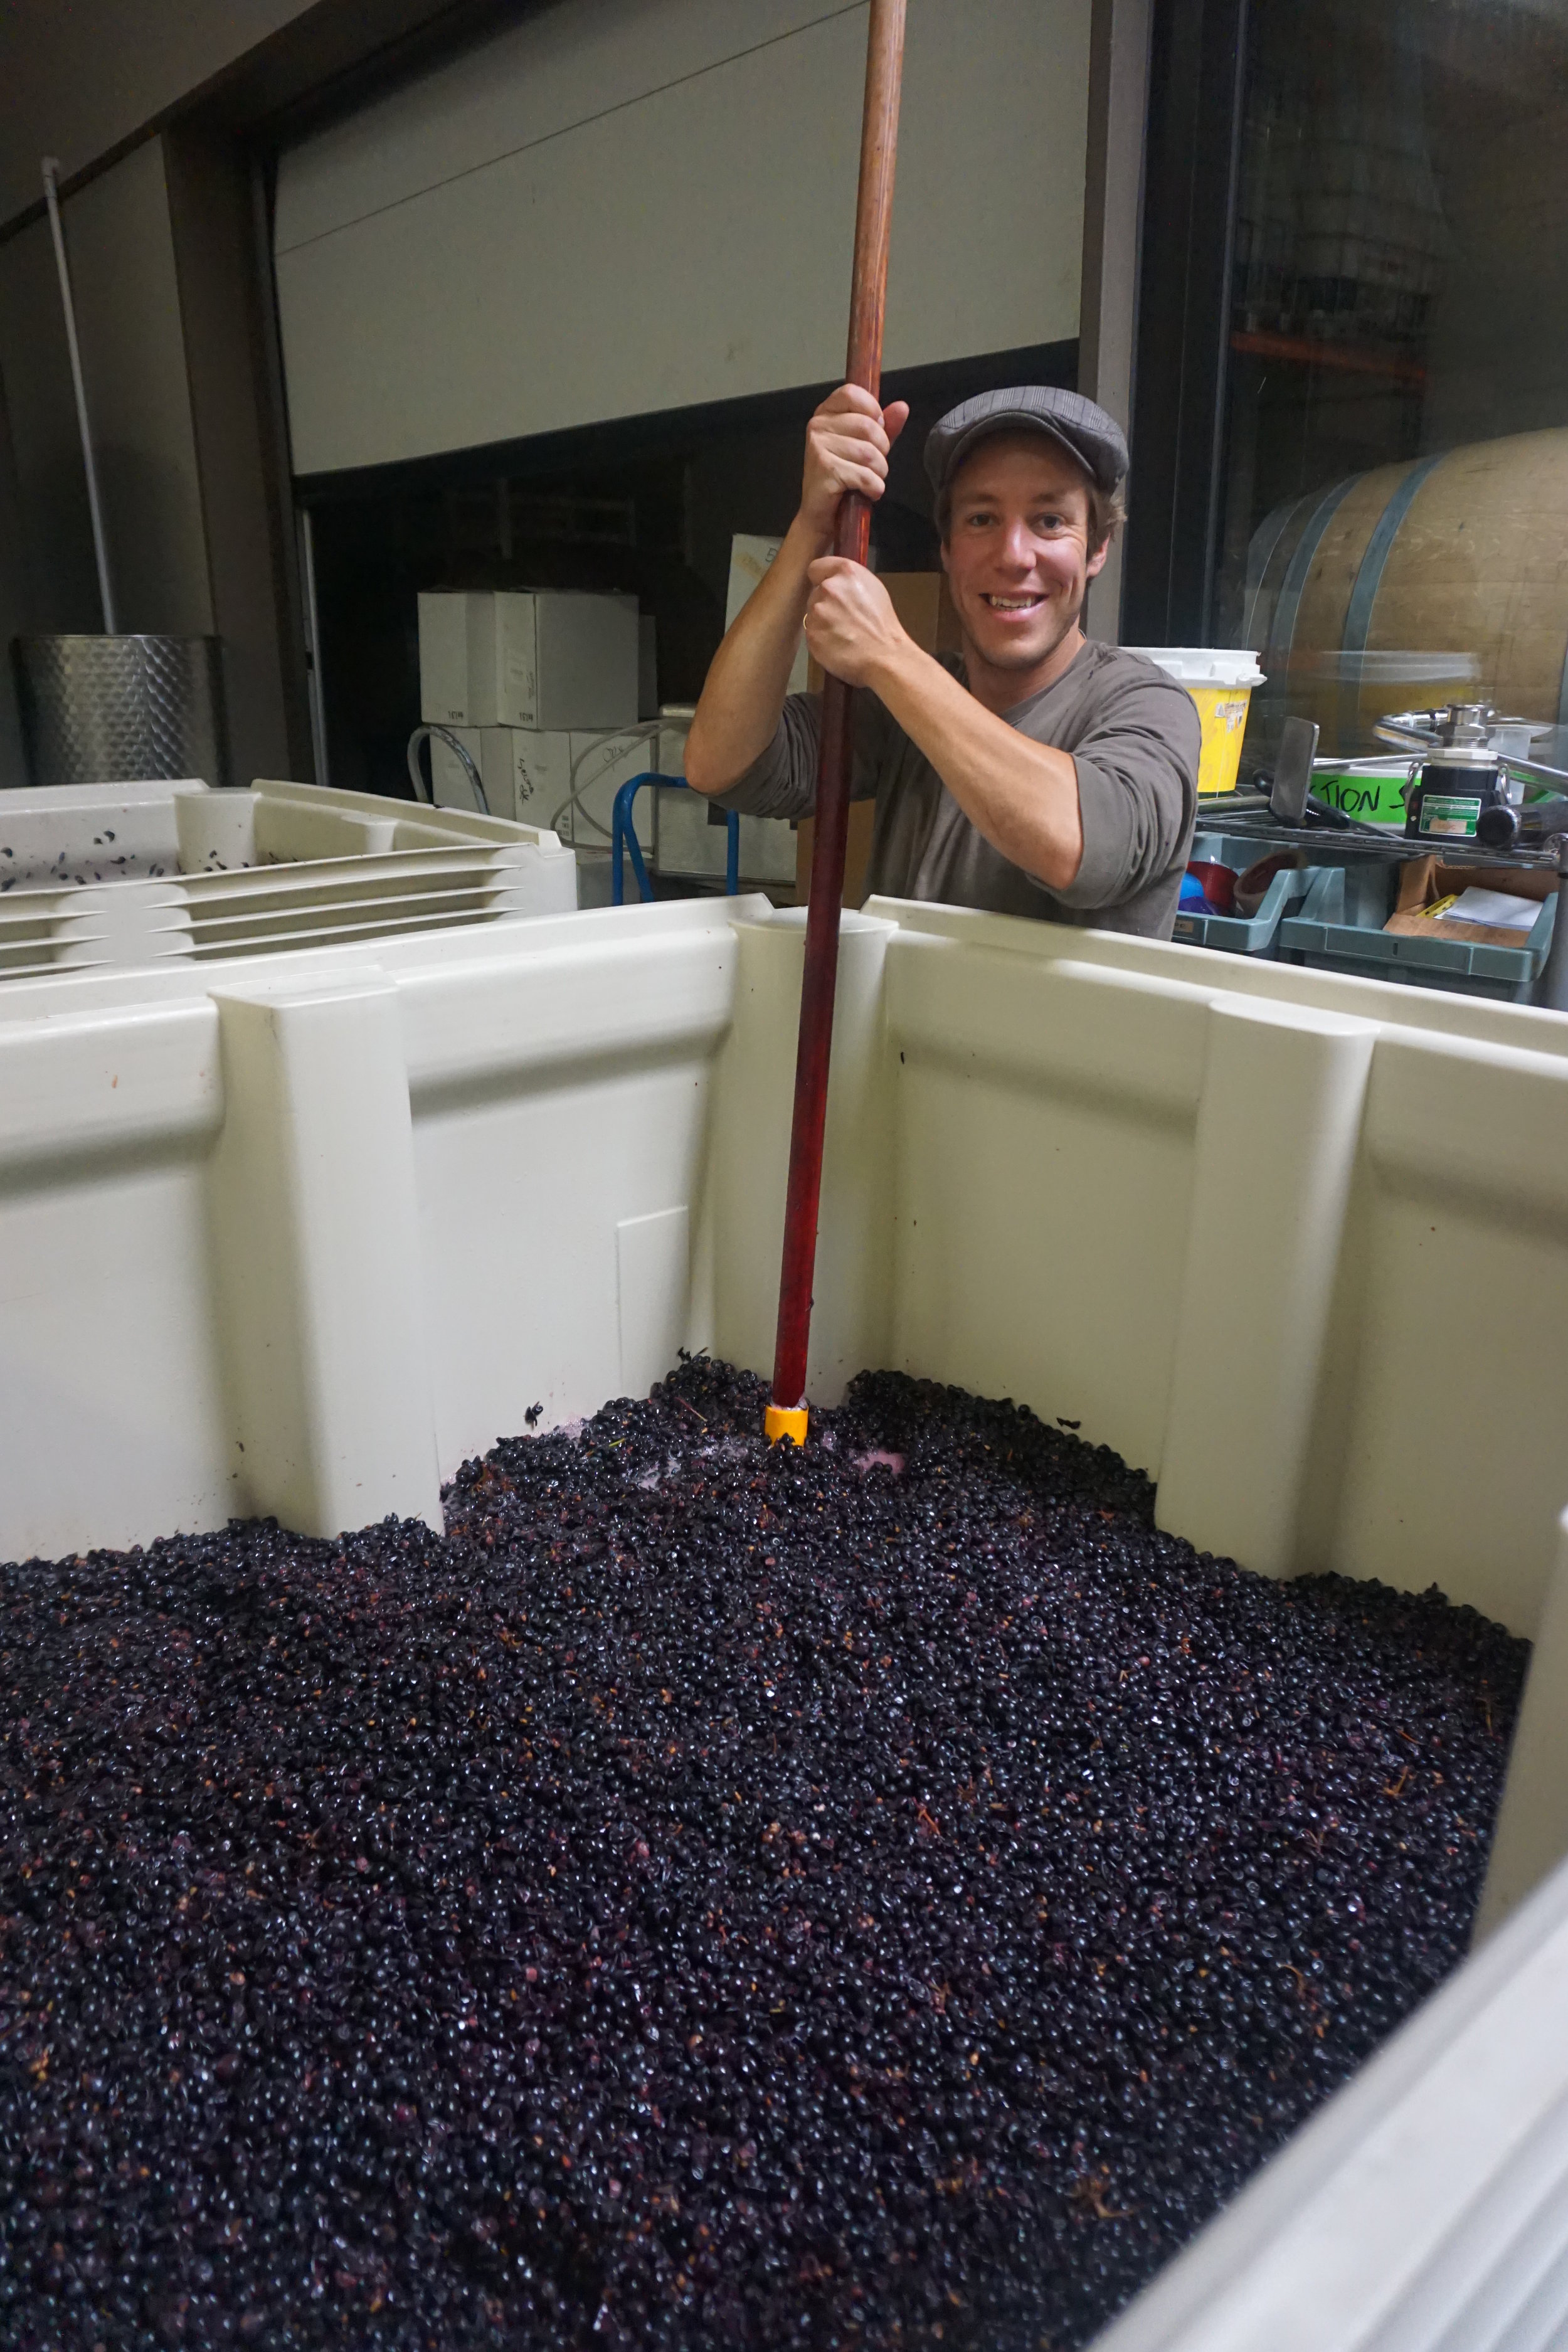 Working with Division Winemaking Company since its inception, French native, Aurelian, is seen here punching down grapes on the production floor at Southeast Wine Collective in Portland, Ore. Viki Eierdam